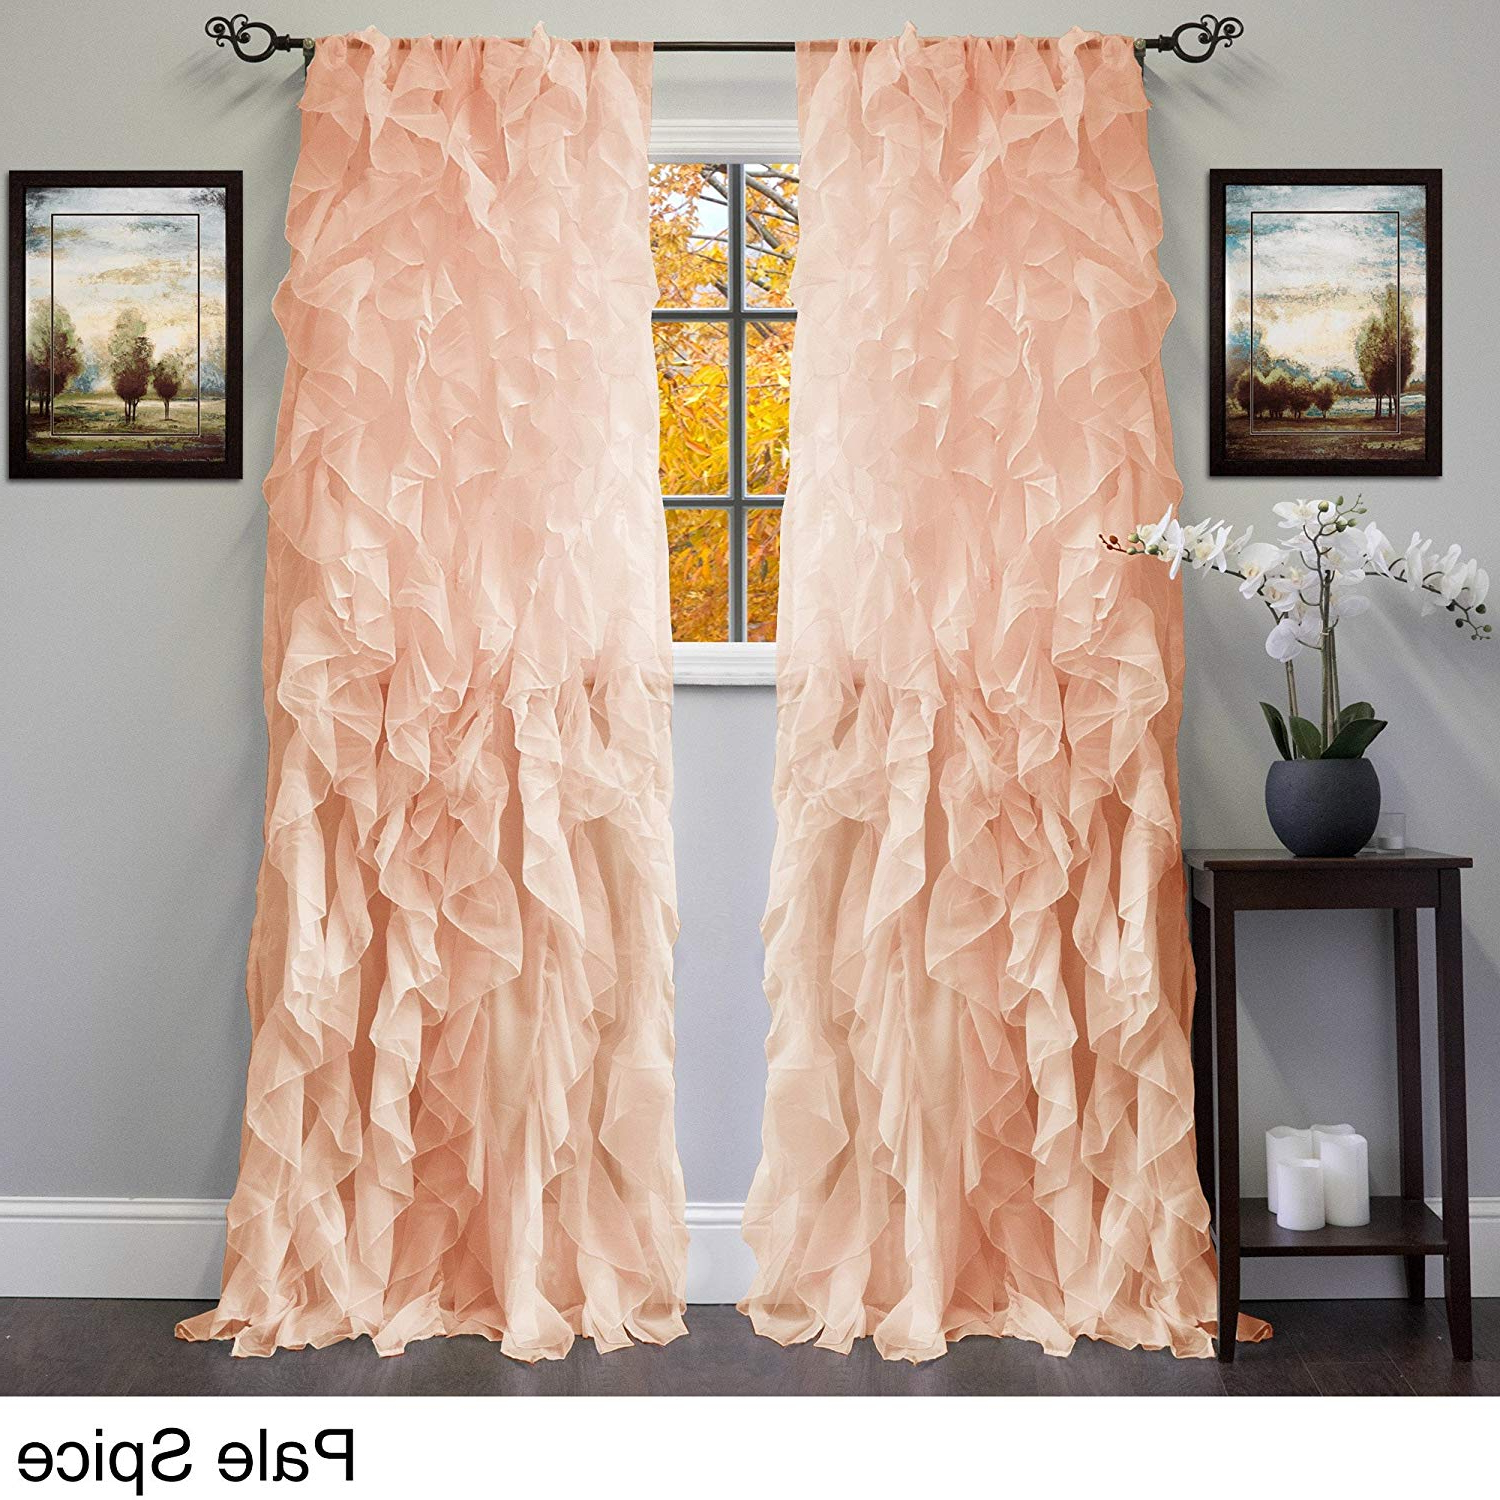 Amazon: Bed Bath N More Sheer Voile Ruffled Tier Window Pertaining To Most Up To Date Sheer Voile Waterfall Ruffled Tier Single Curtain Panels (View 1 of 20)